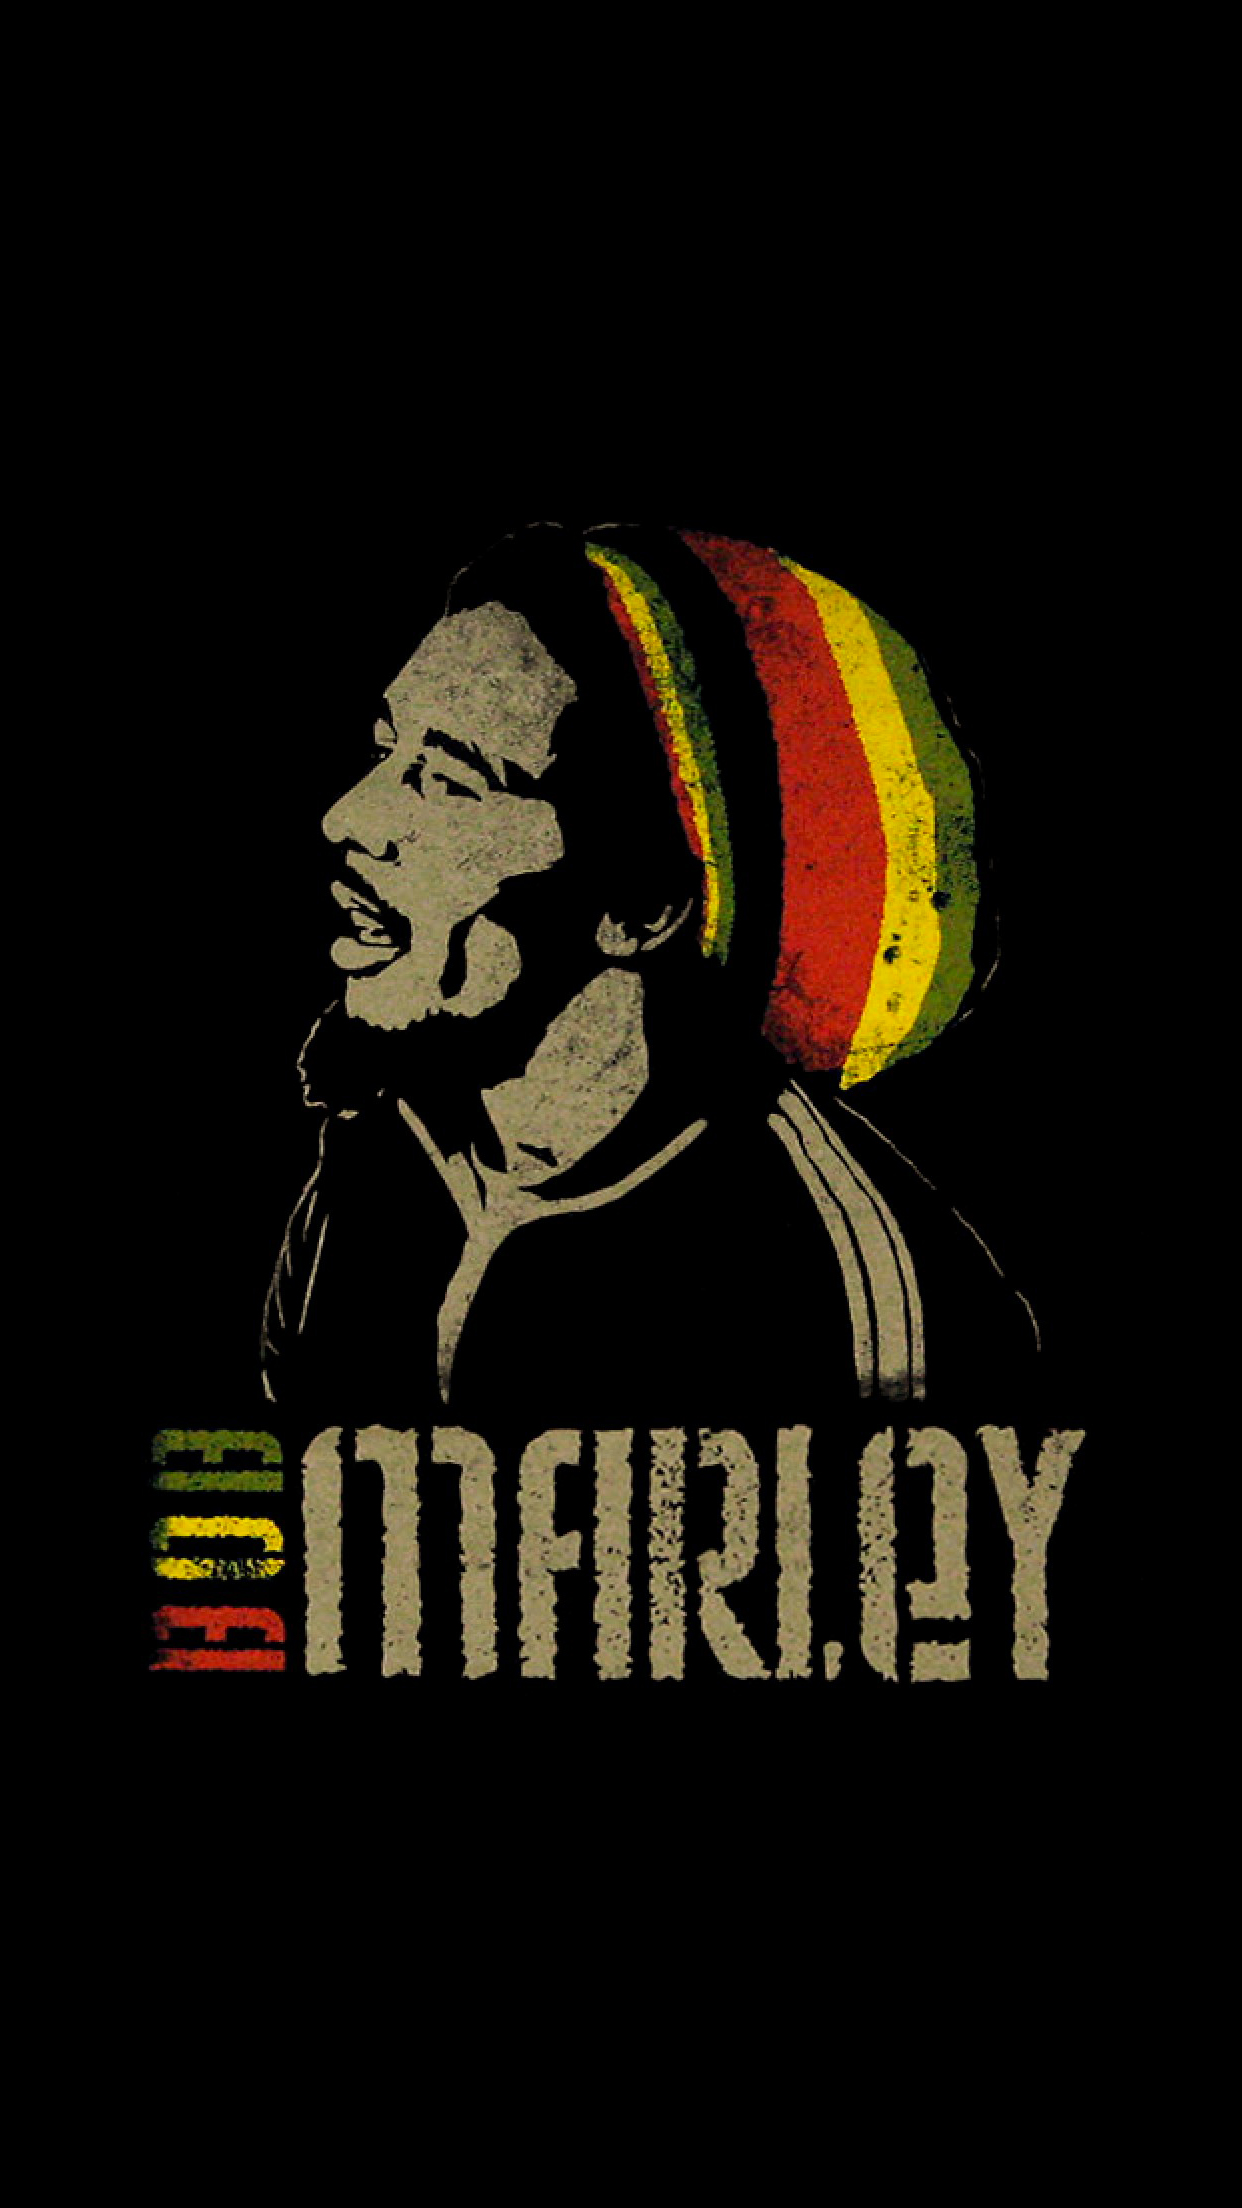 Bob Marley Wallpaper For Iphone X 8 7 6 Free Download